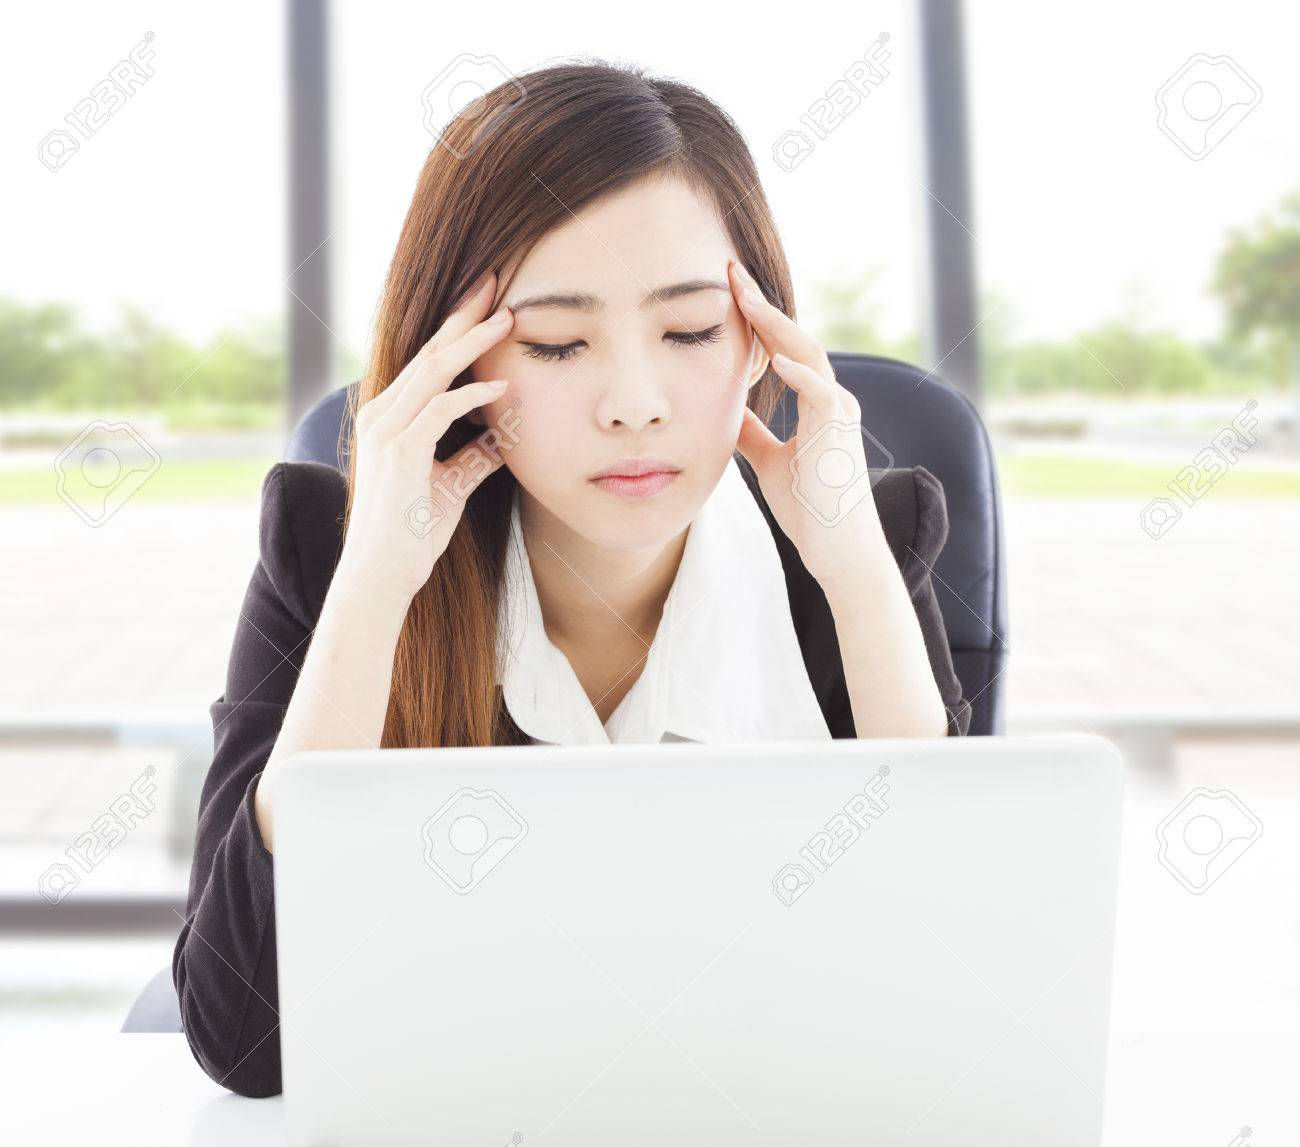 Young Business woman feel headach and full of painful expression Stock Photo - 28403981